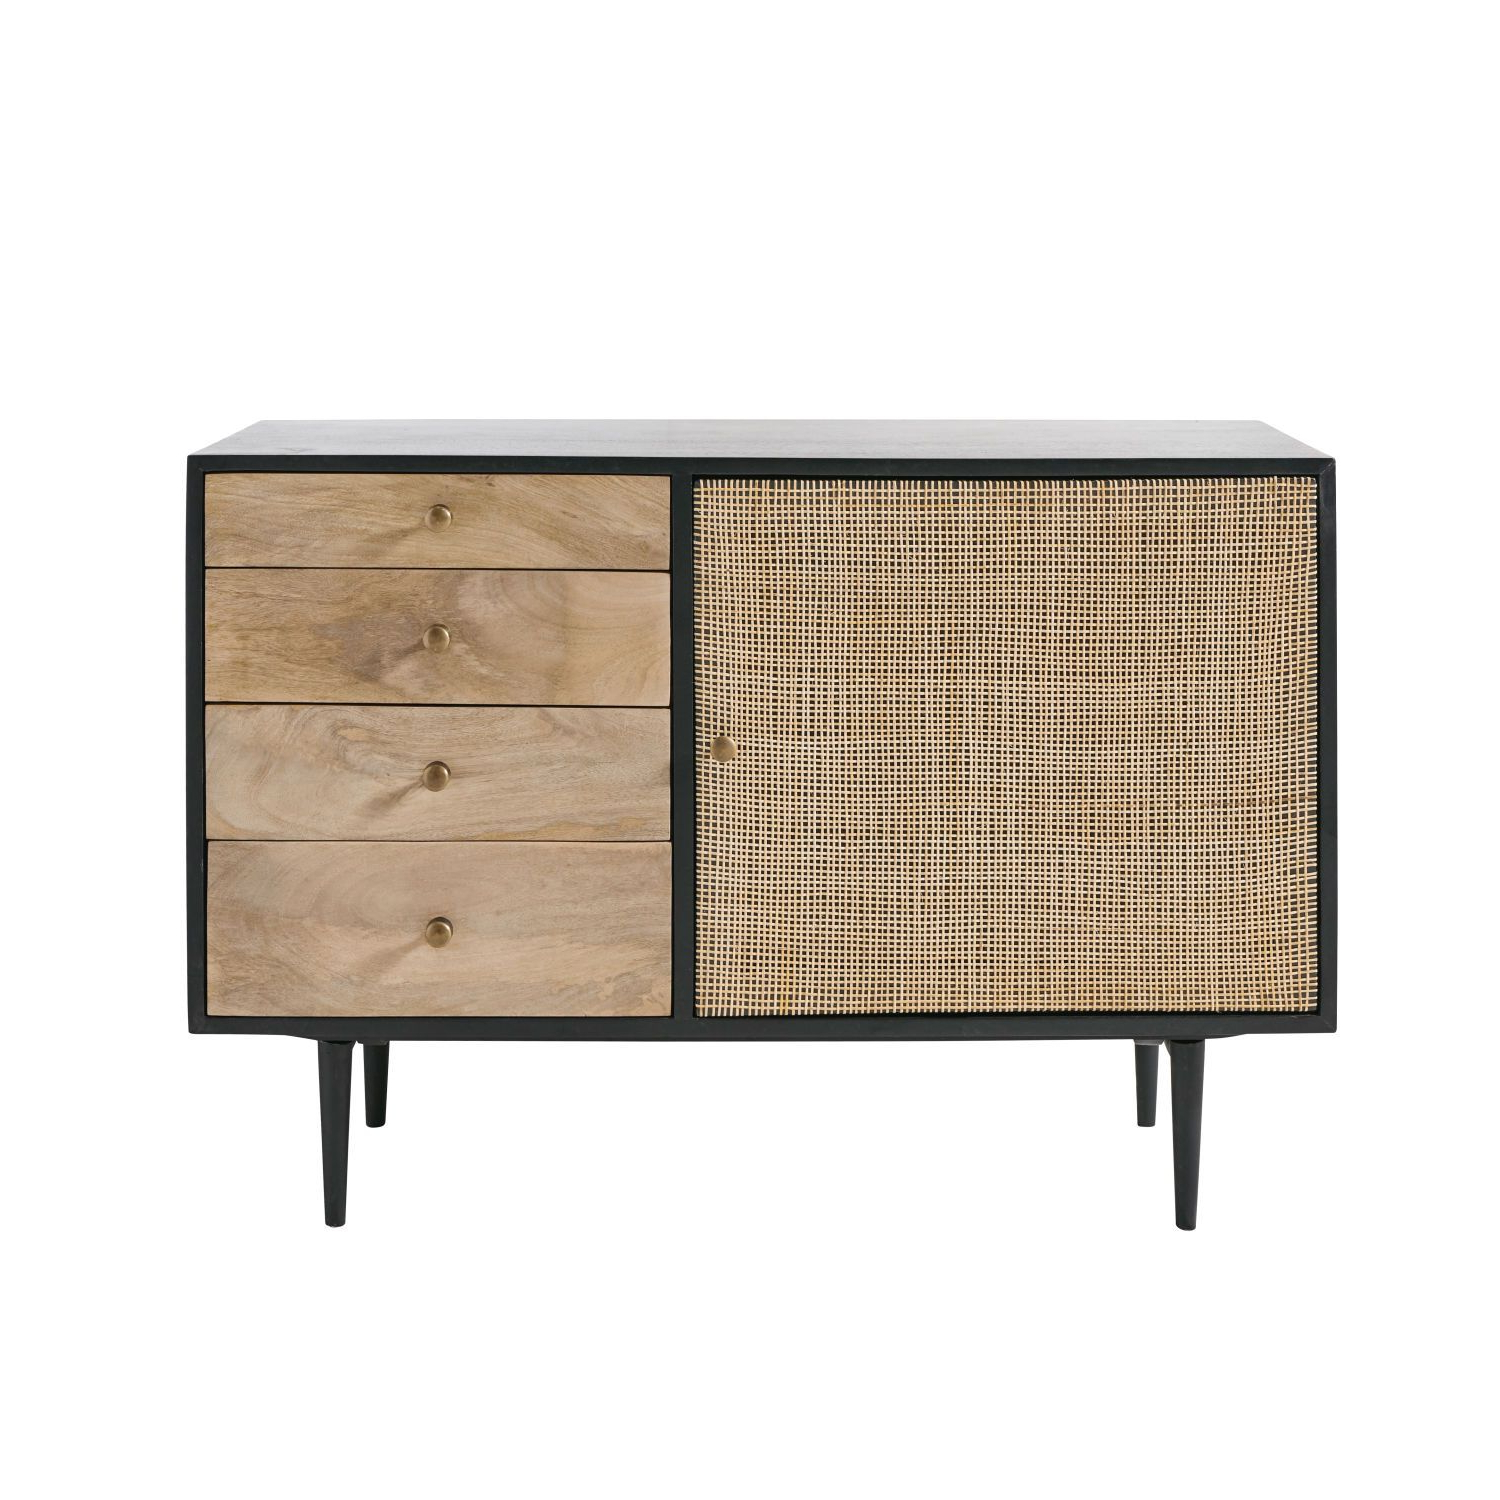 2019 Solid Mango Wood And Acacia 1 Door 4 Drawer Sideboard In 2018 Pertaining To Acacia Wood 4 Door Sideboards (View 1 of 20)